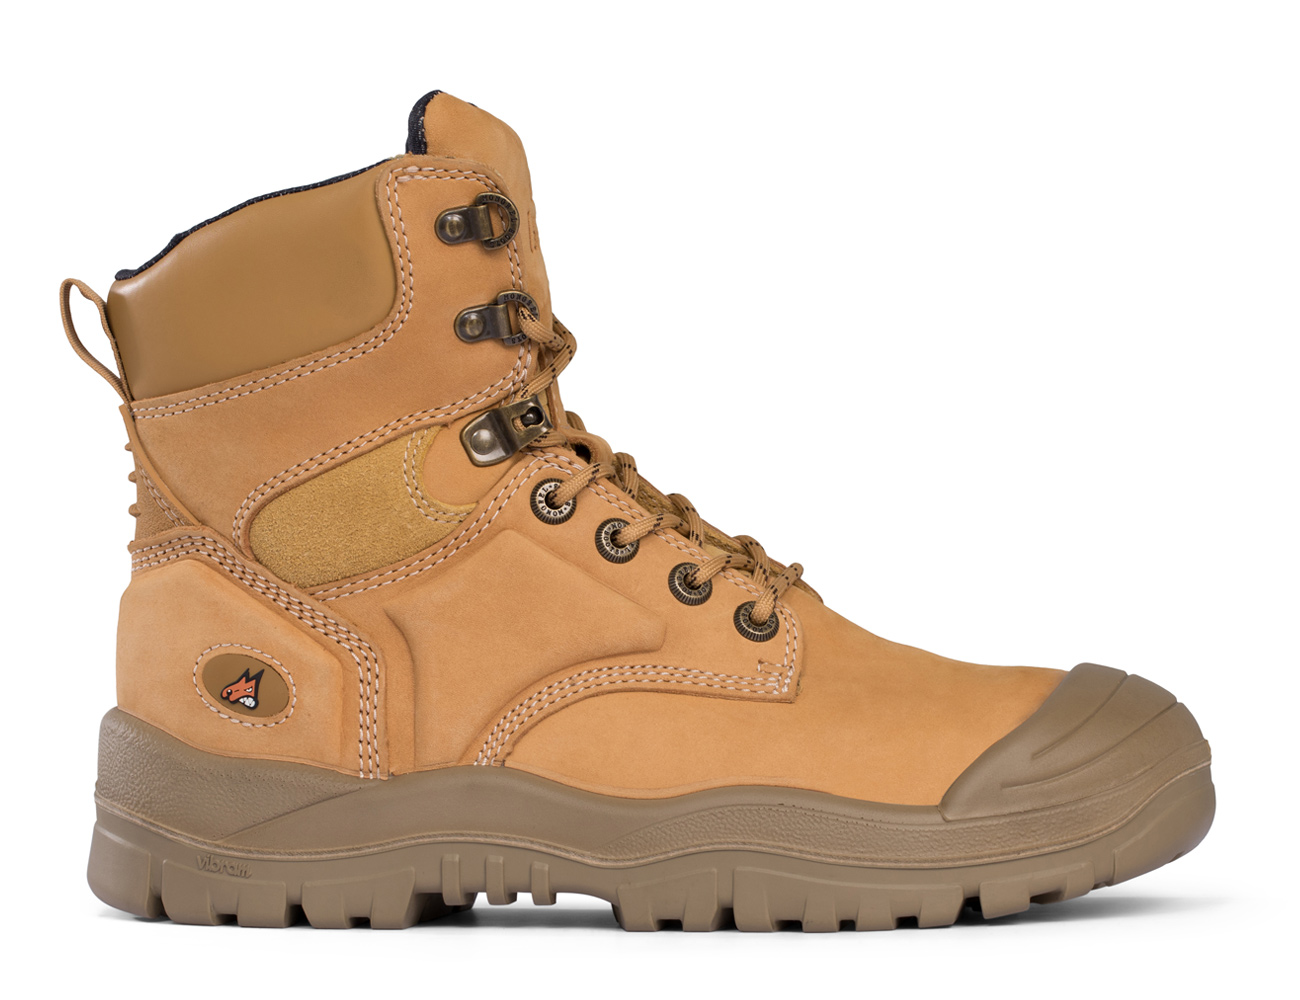 High Leg Lace Up Boot With Scuff Cap - Tan